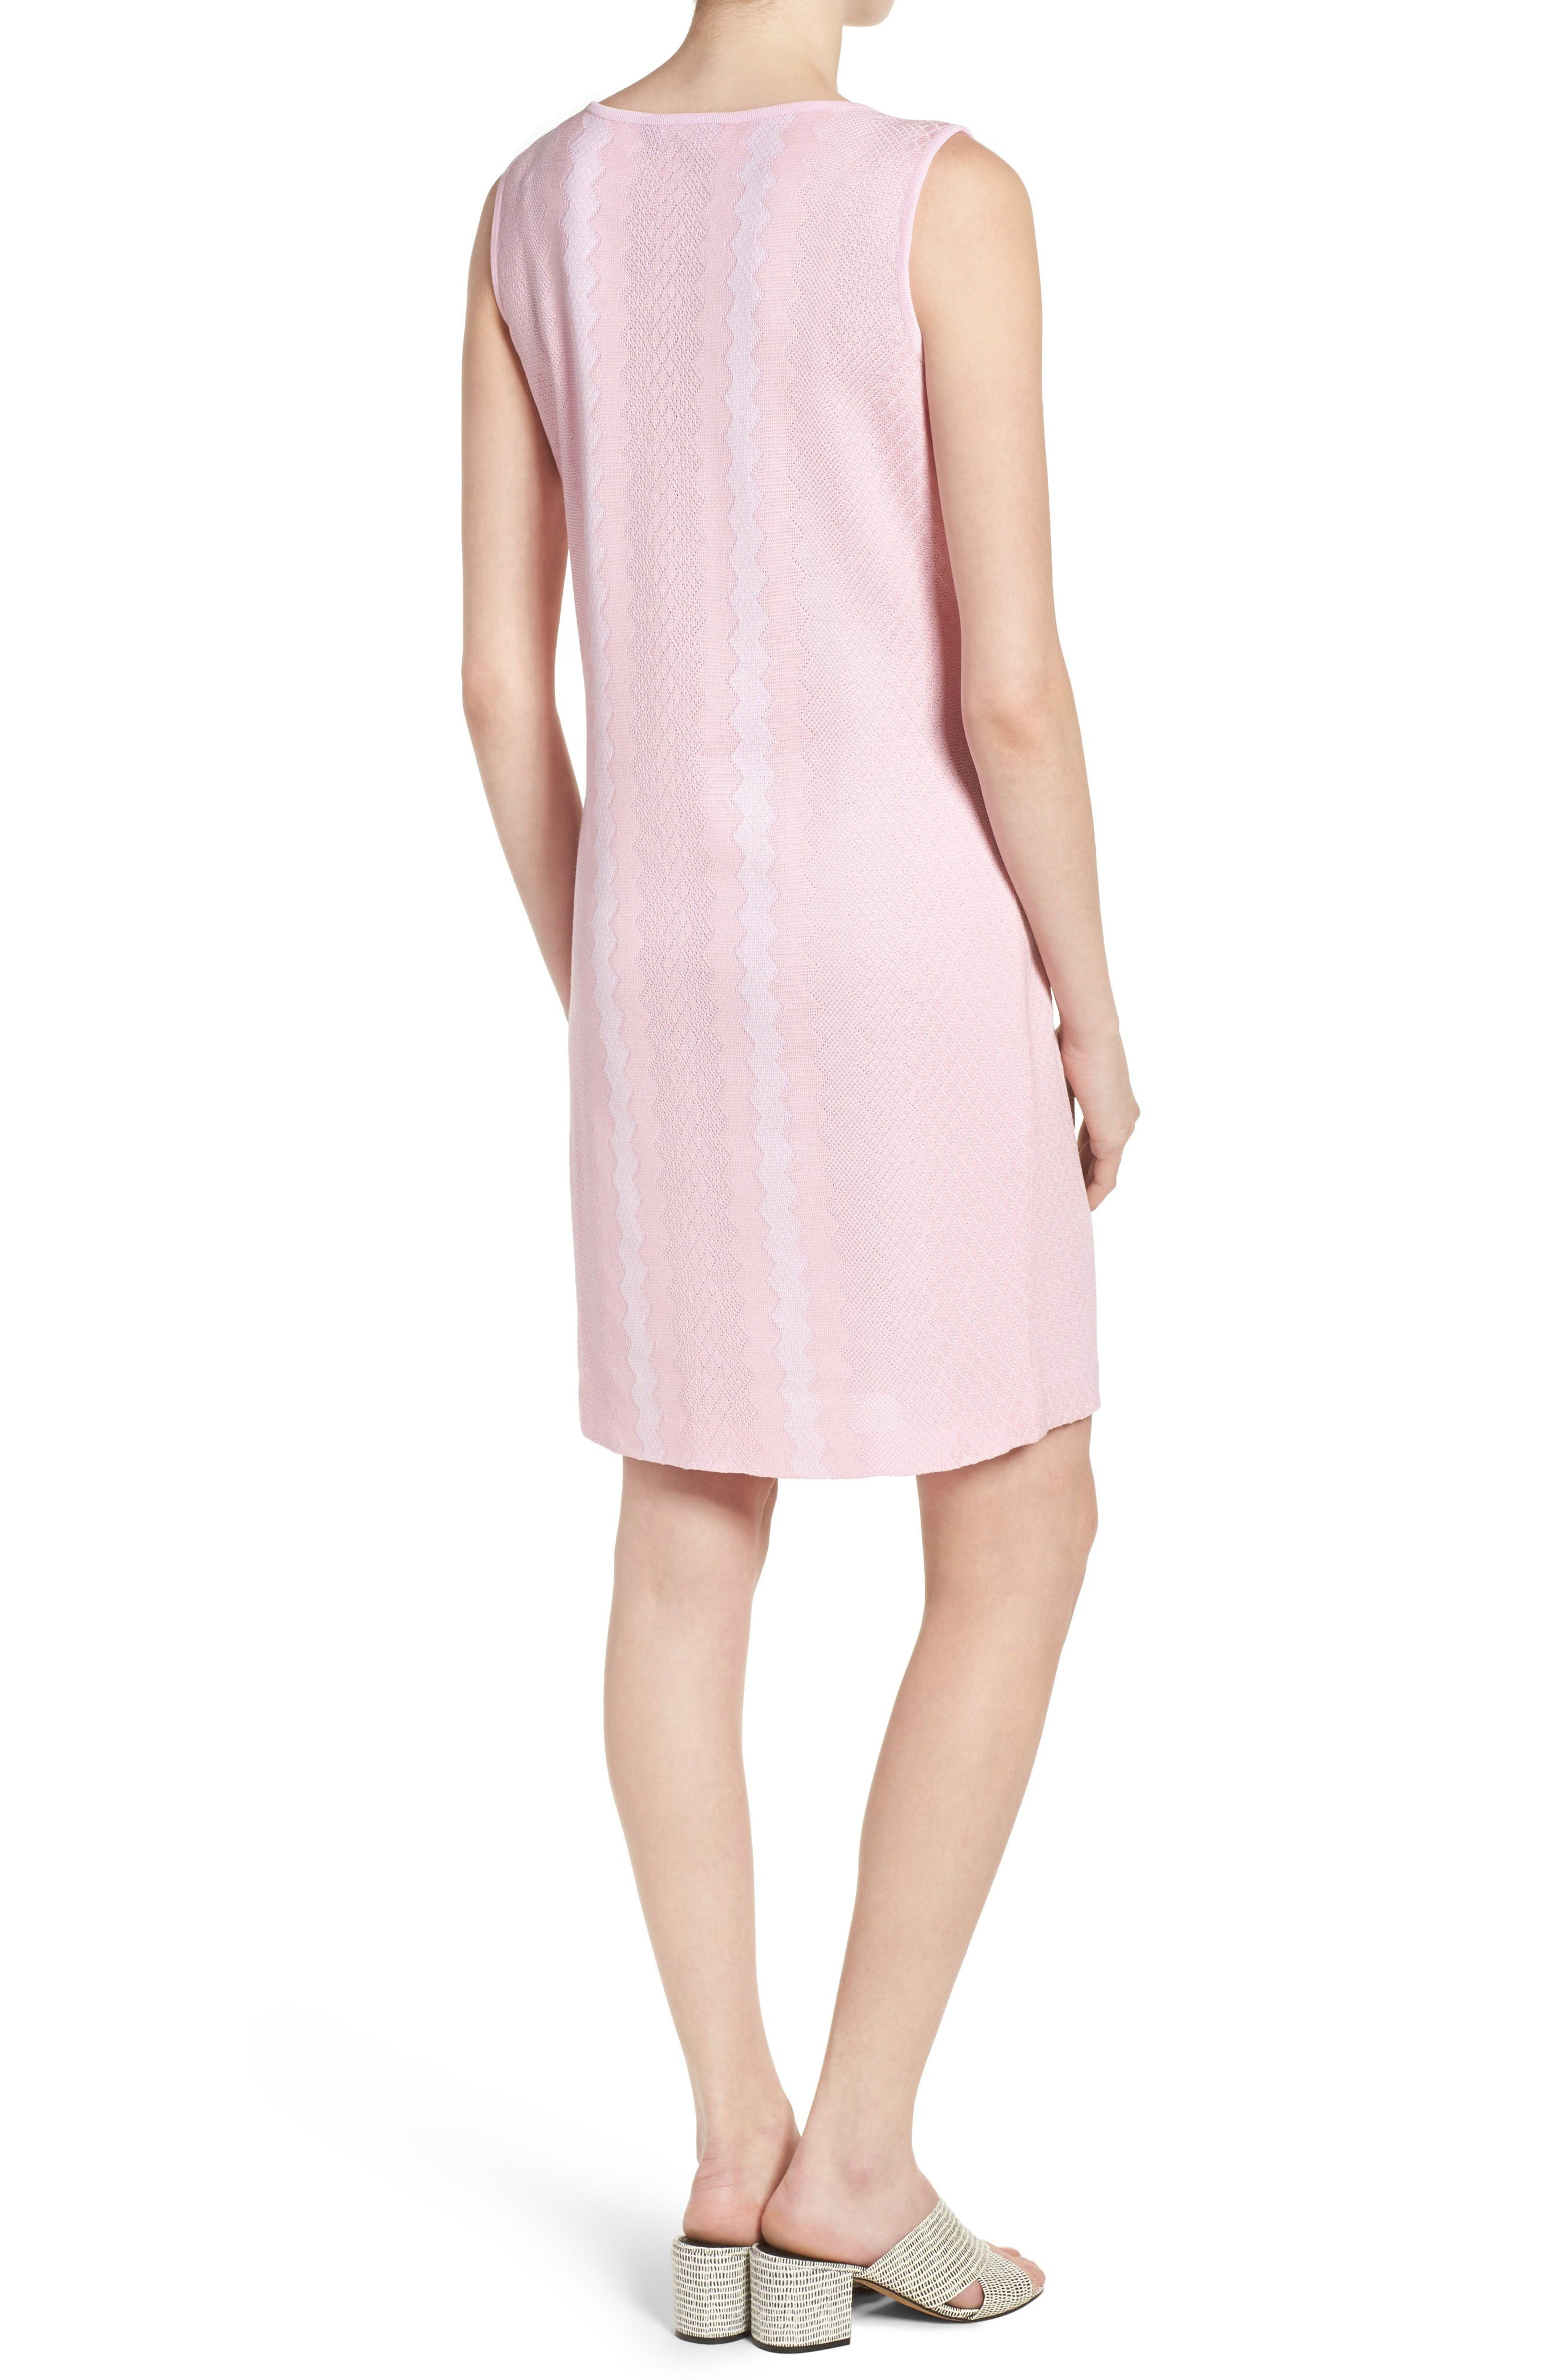 Sleeveless Knit Sheath Dress,                             Alternate thumbnail 2, color,                             Perfect Pink/ White